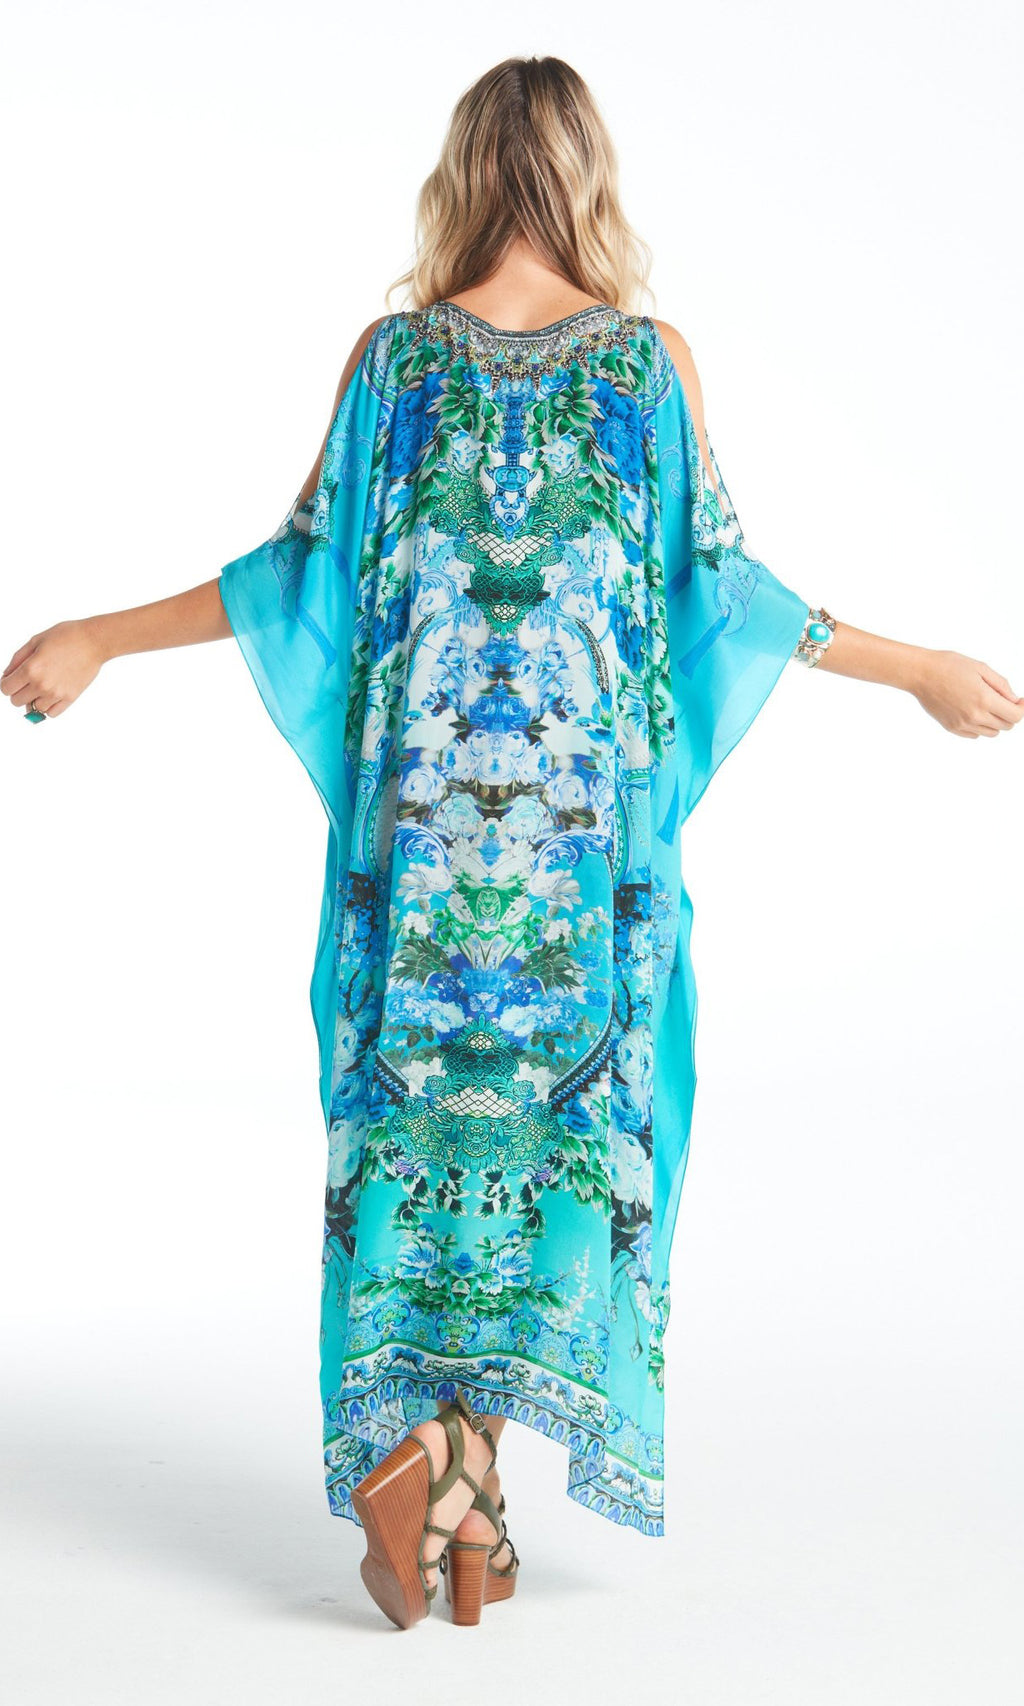 Silk Kaftan Medium With Slit Those Blue Eyes